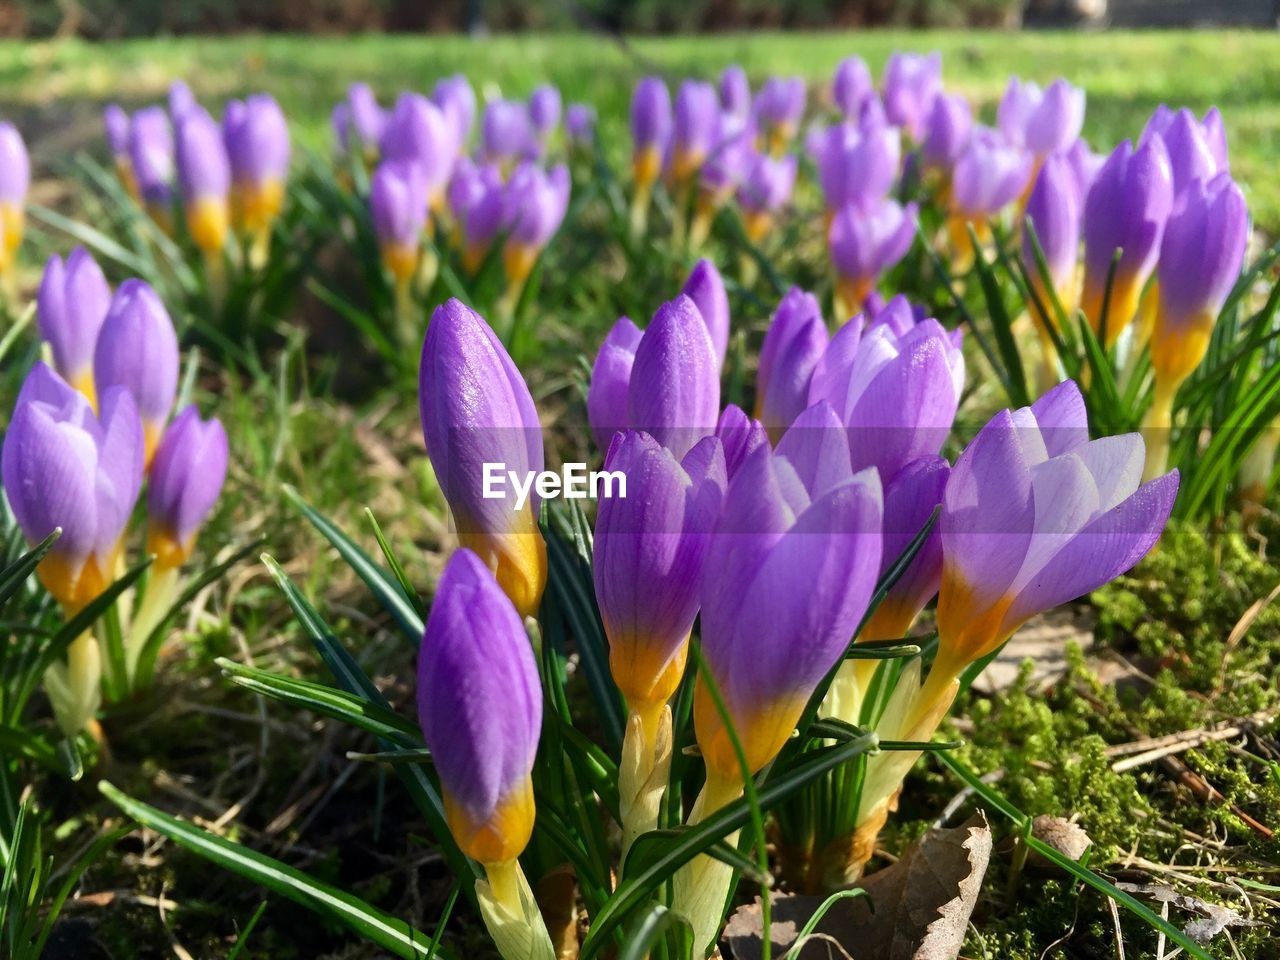 flowering plant, flower, plant, freshness, growth, purple, crocus, beauty in nature, iris, fragility, vulnerability, petal, field, close-up, land, nature, flower head, inflorescence, day, no people, outdoors, springtime, flowerbed